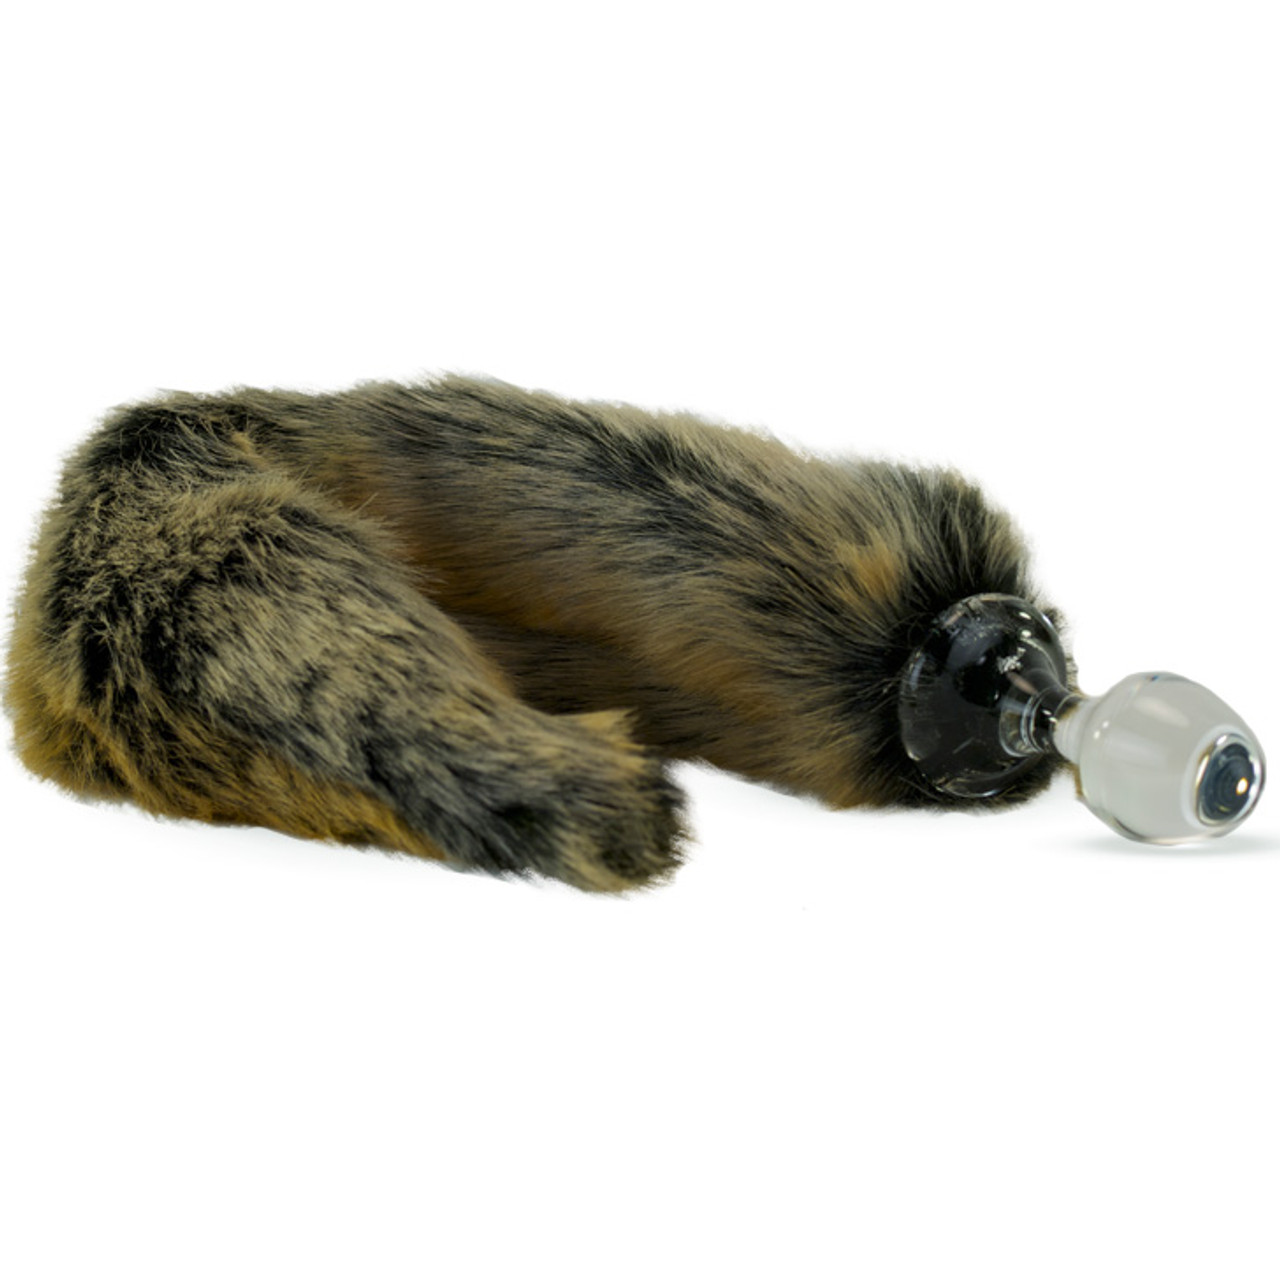 9e11817d196 Crystal Delights Minx Glass Butt Plug Faux Fur Tail Red Wolf ...